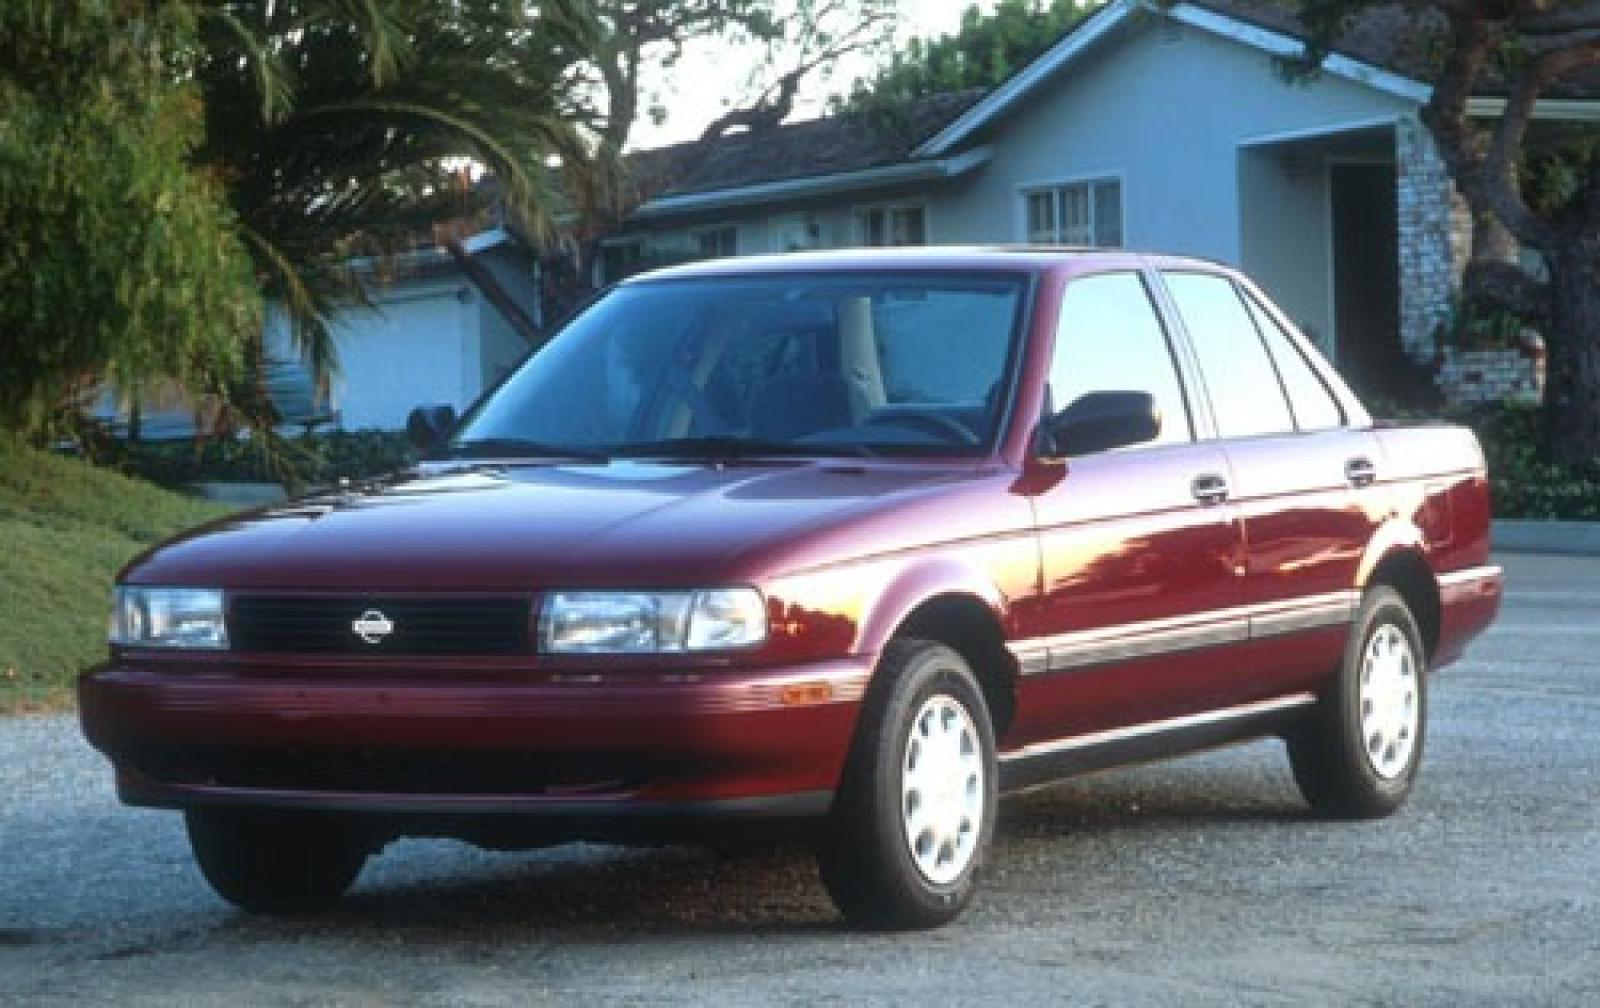 1990 Sentra Nissan Coupe